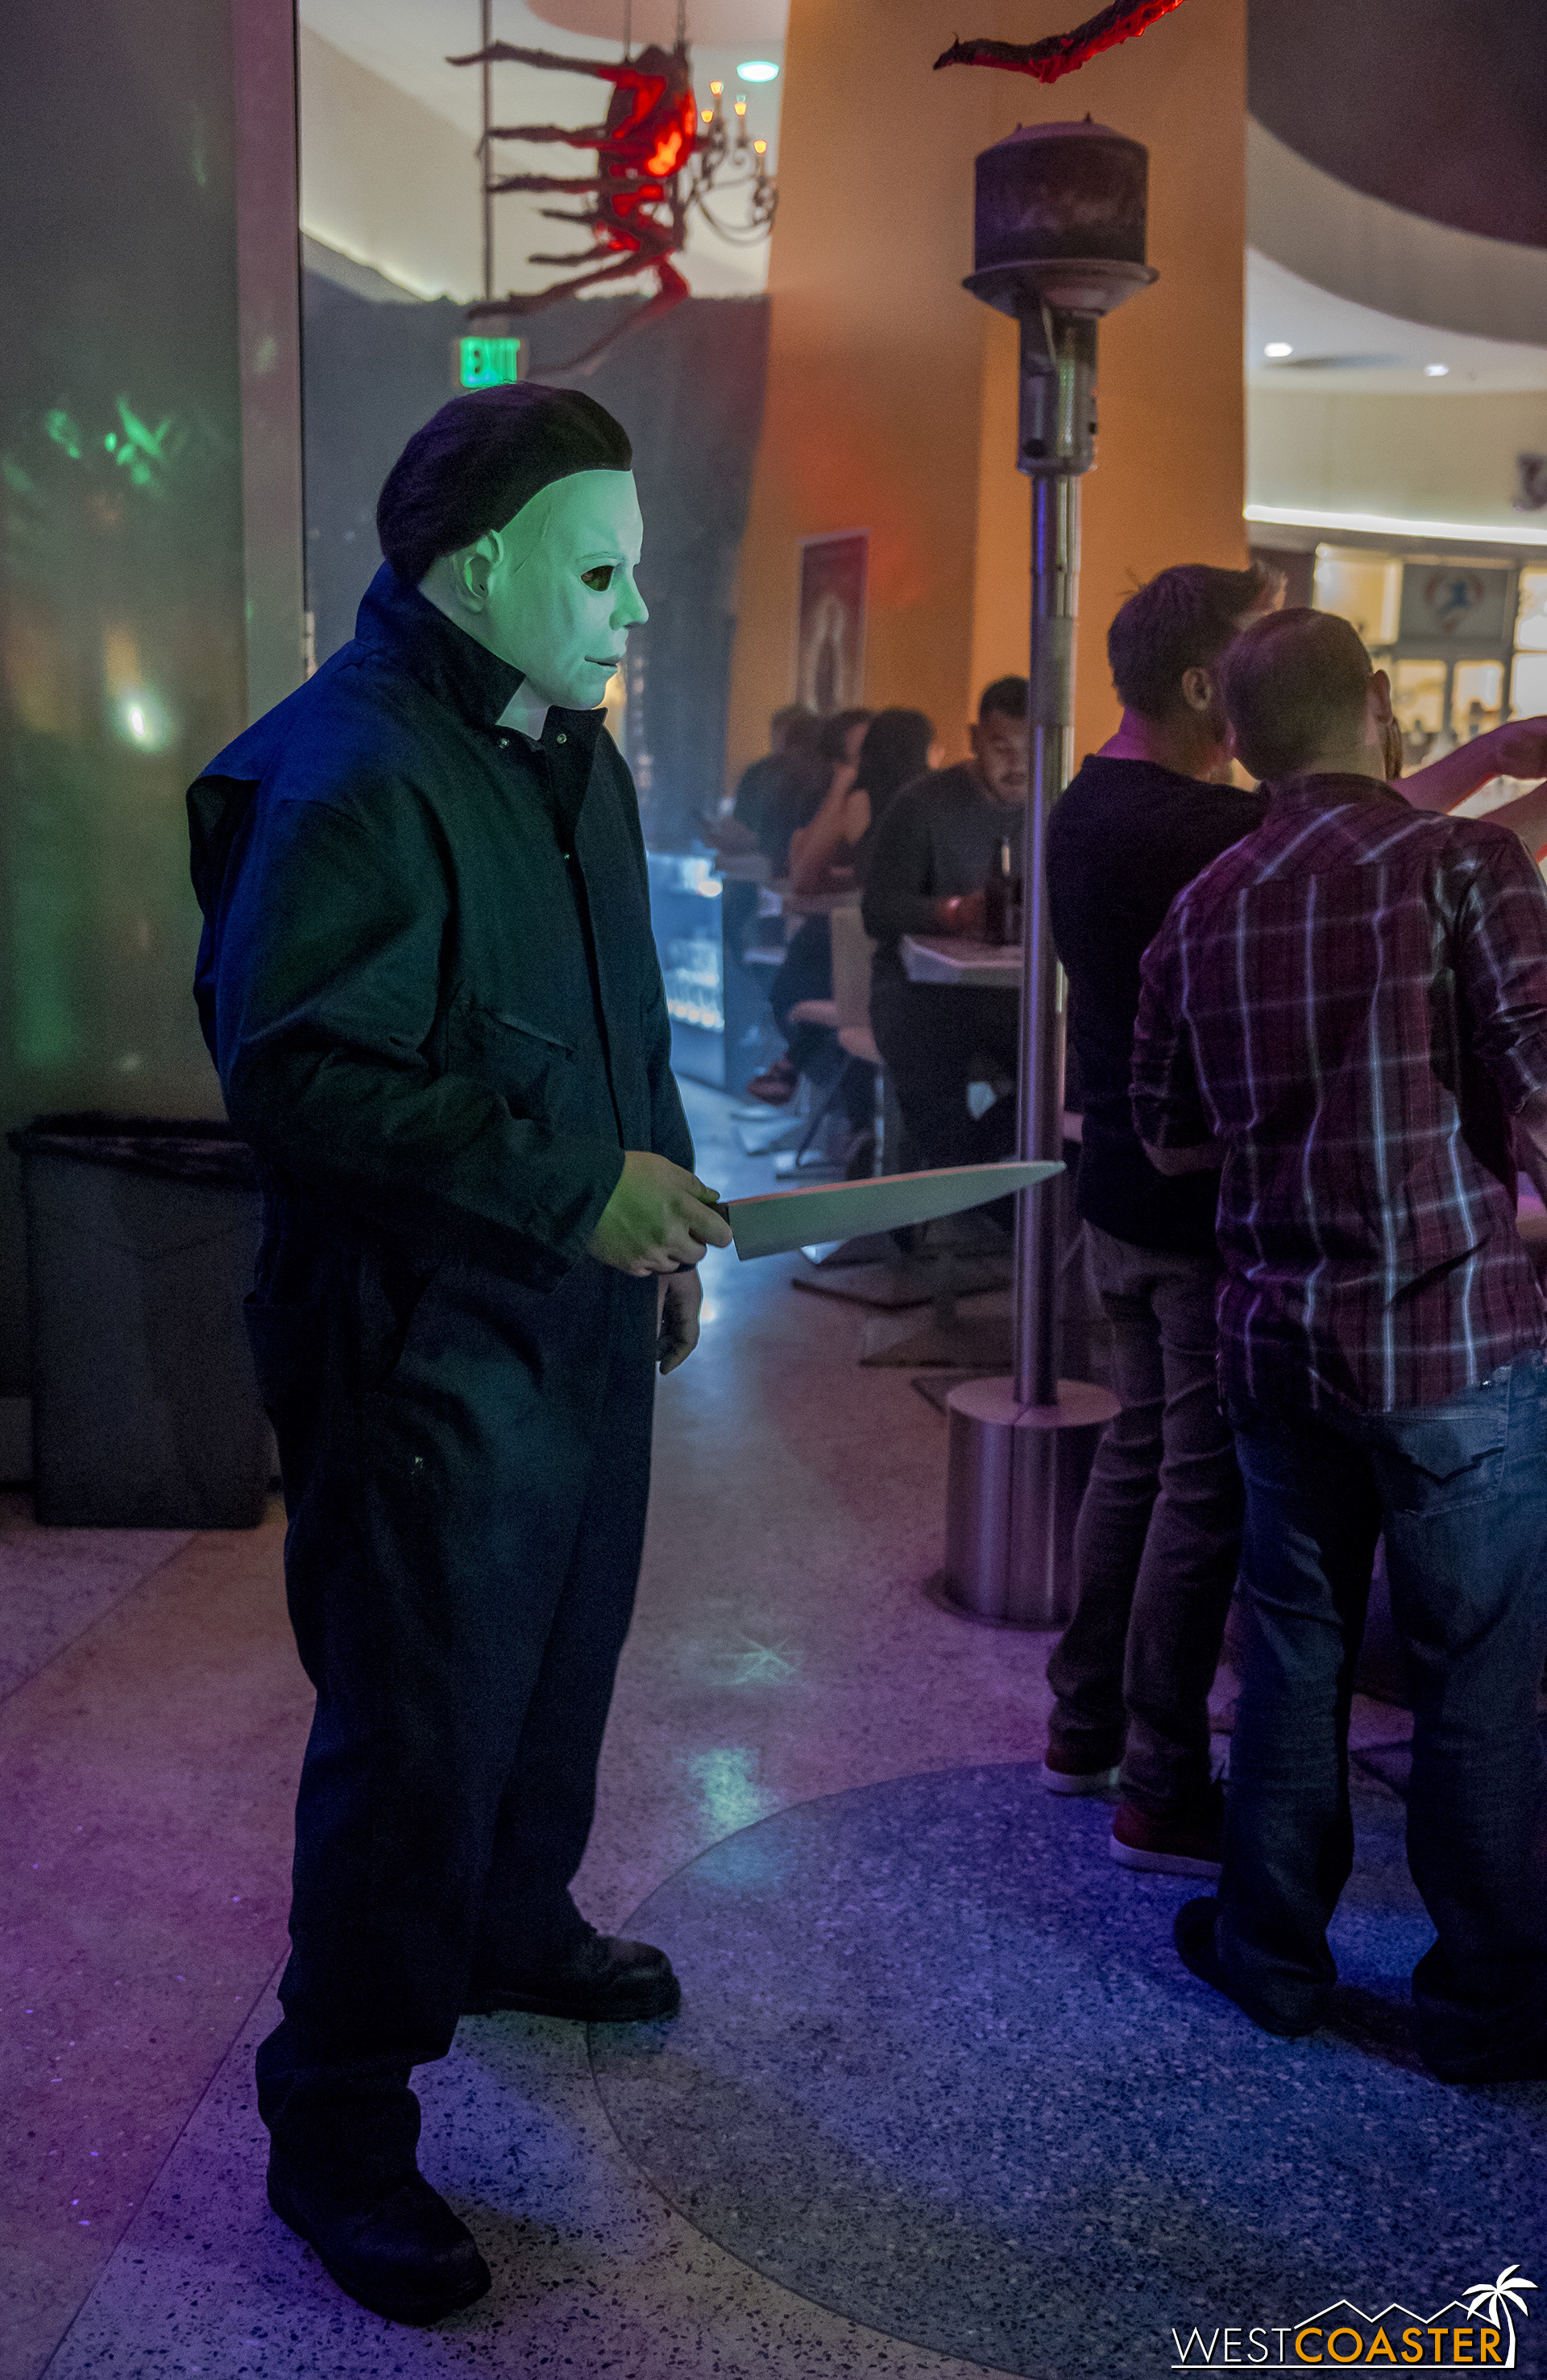 Michael Myers stalks guests but also poses for photos.